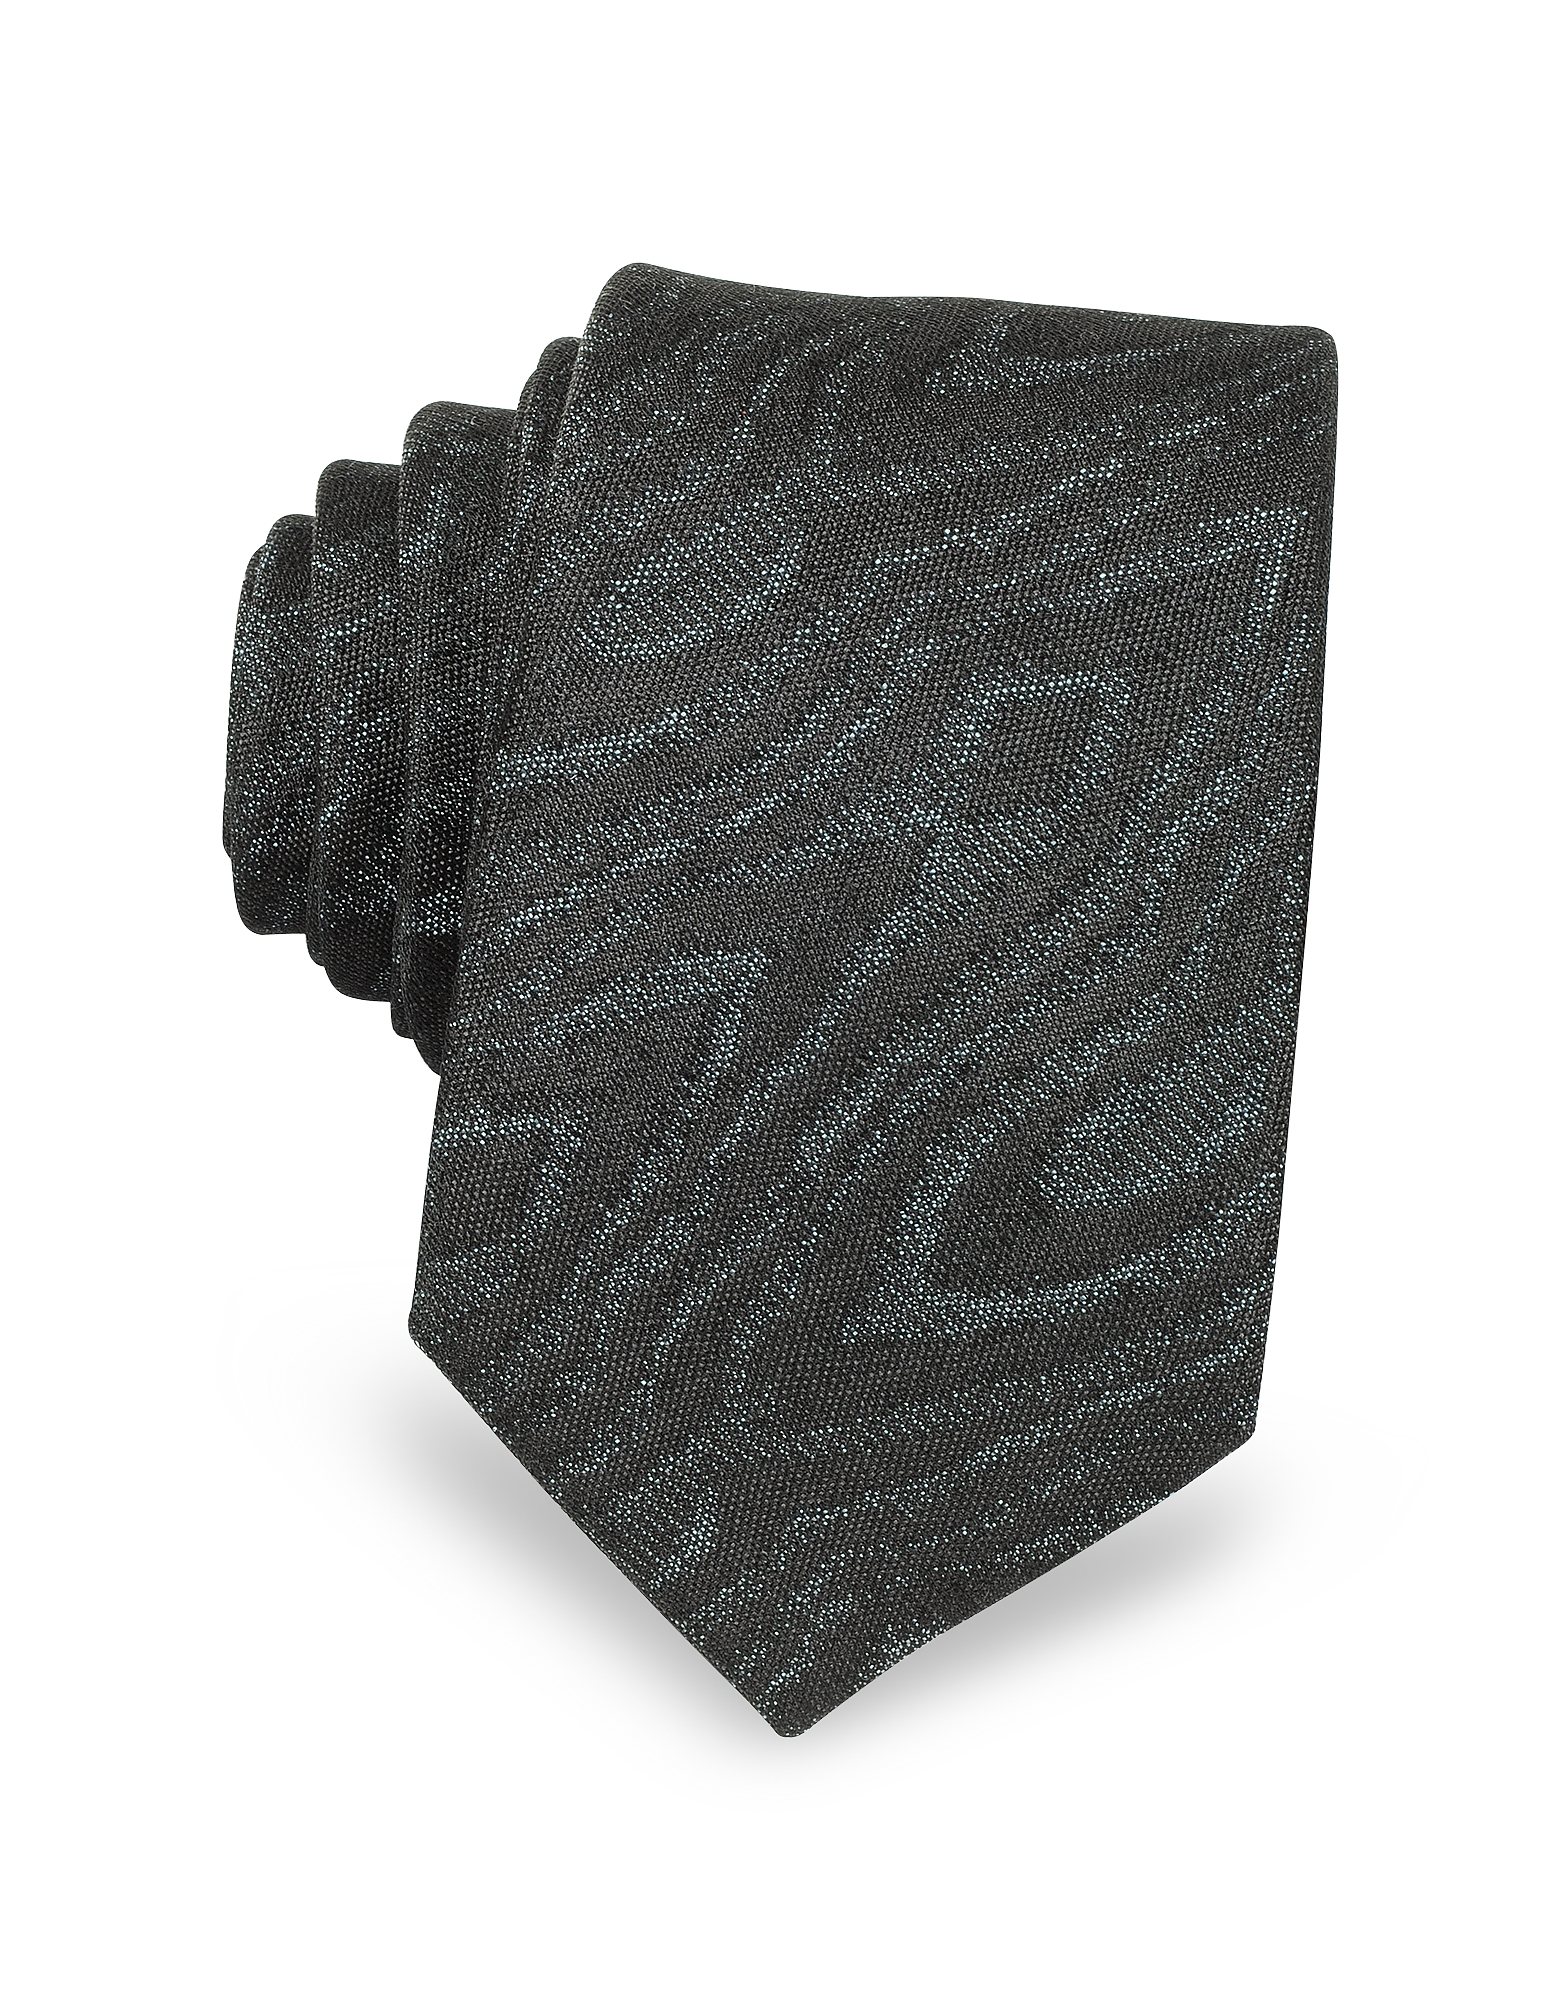 Lanvin Ties, Black Woven Silk Narrow Tie